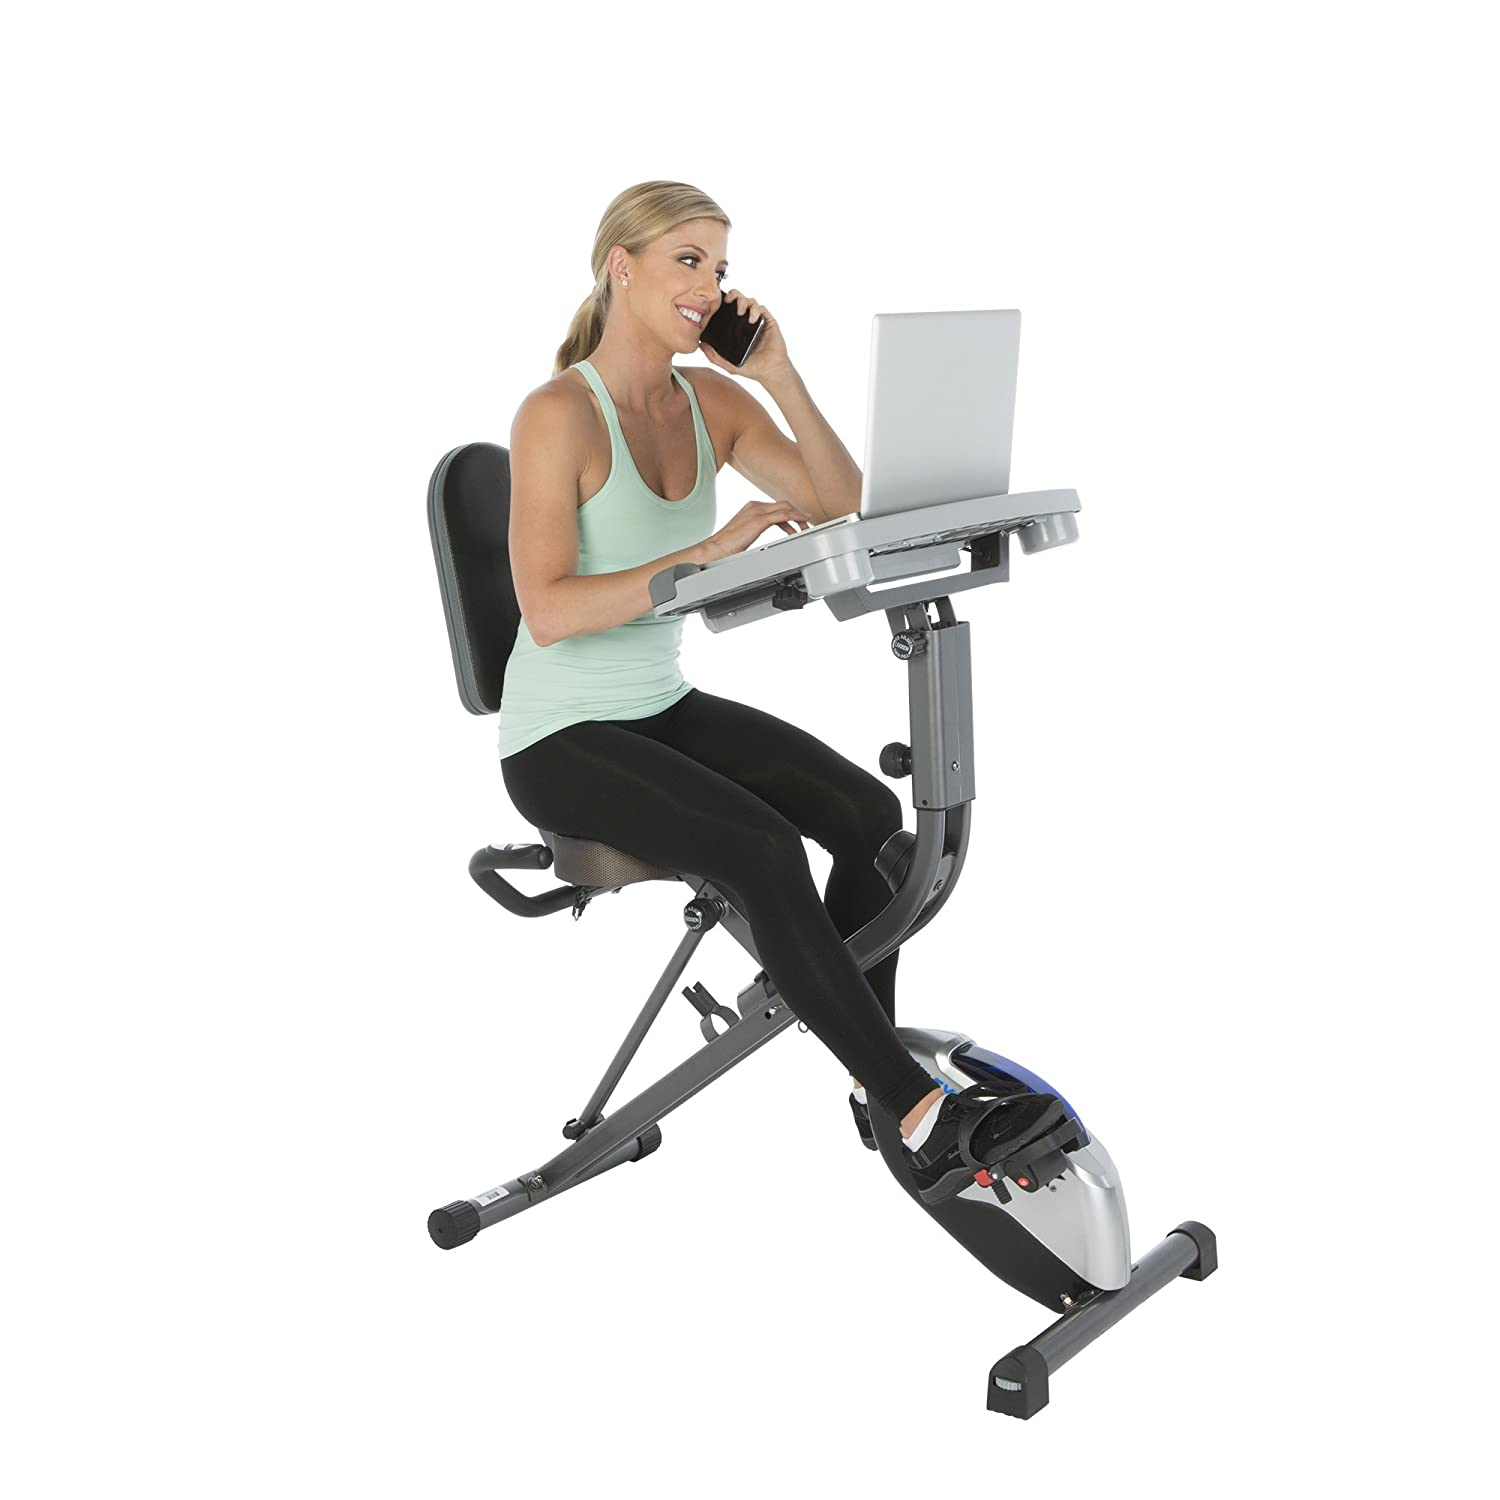 Exerpeutic ExerWork Desk Bike Black Friday Deal 2020